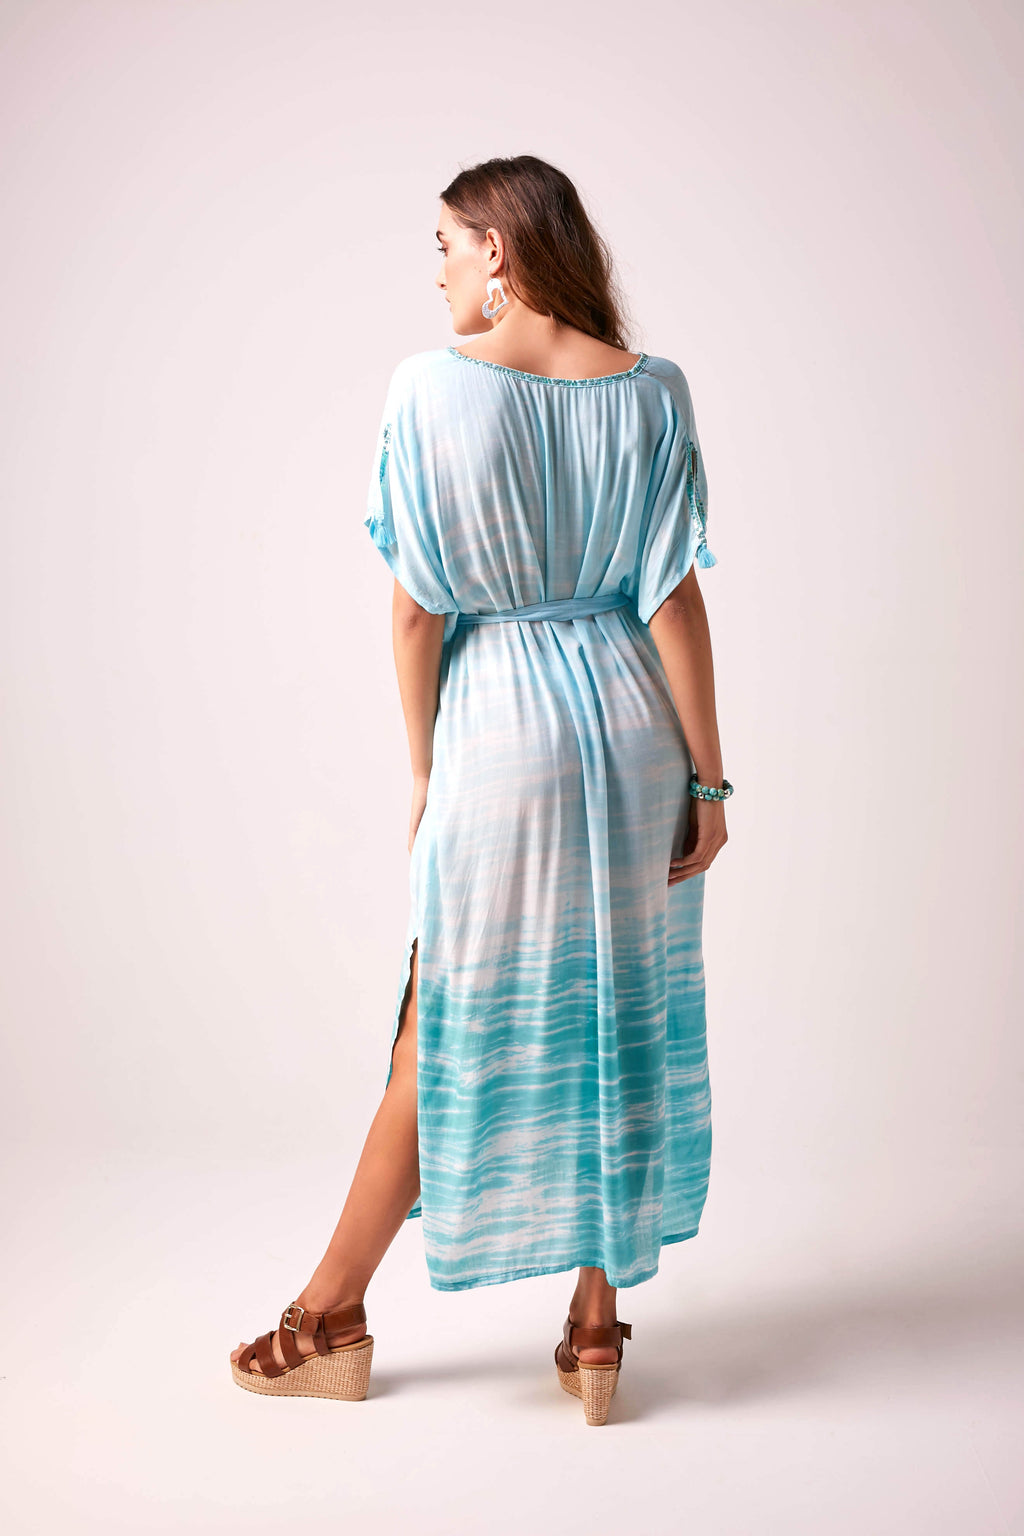 OCEAN - Oversized Tie-Dye Maxi Dress